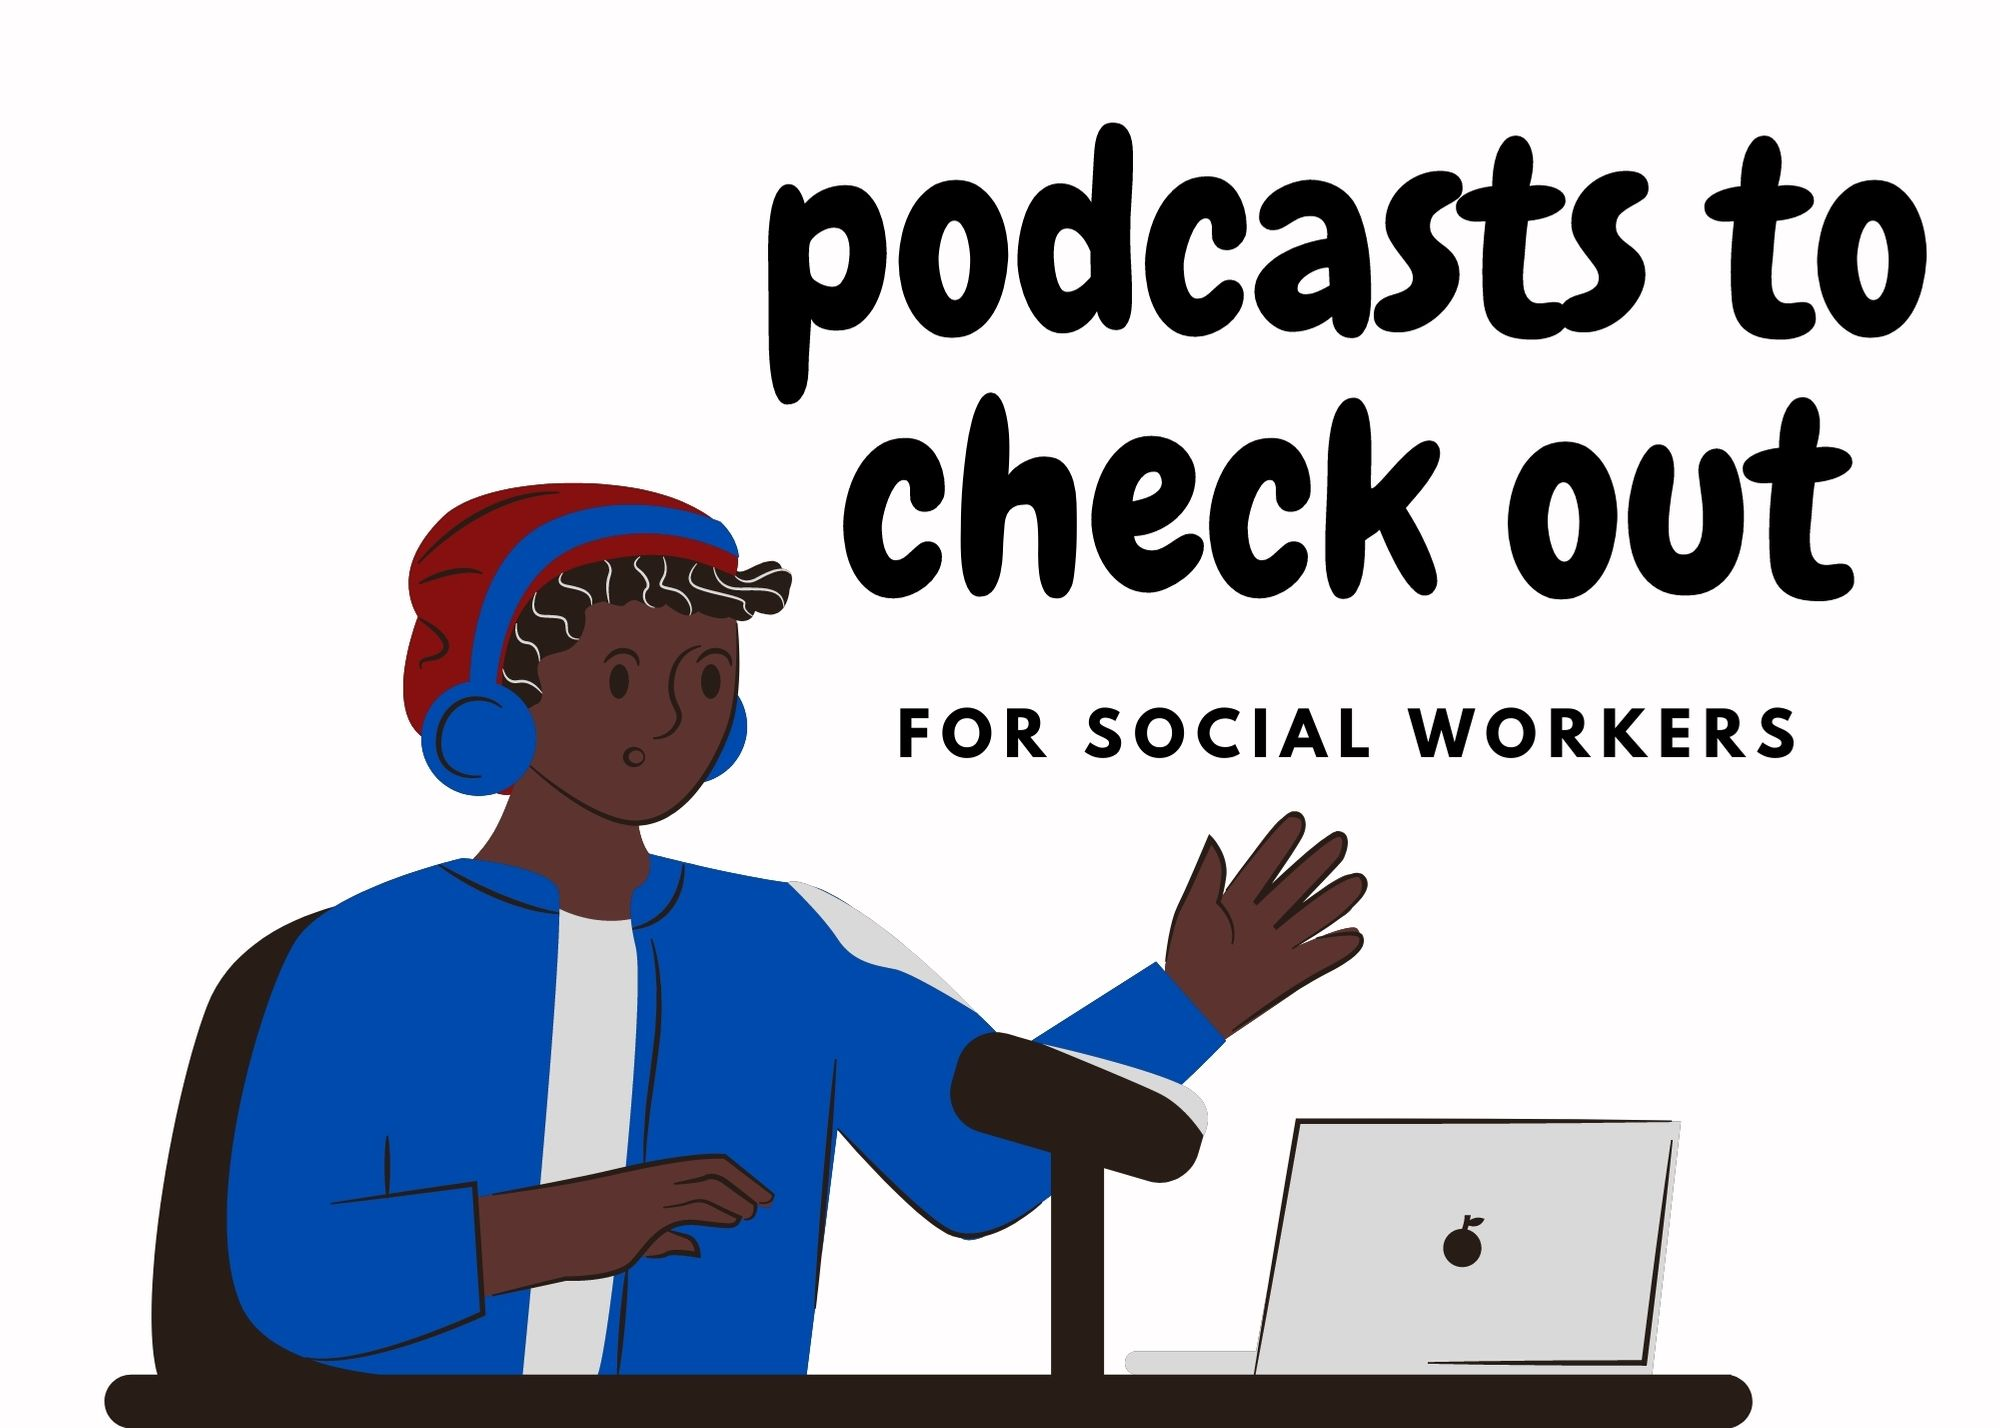 check out these sw podcasts